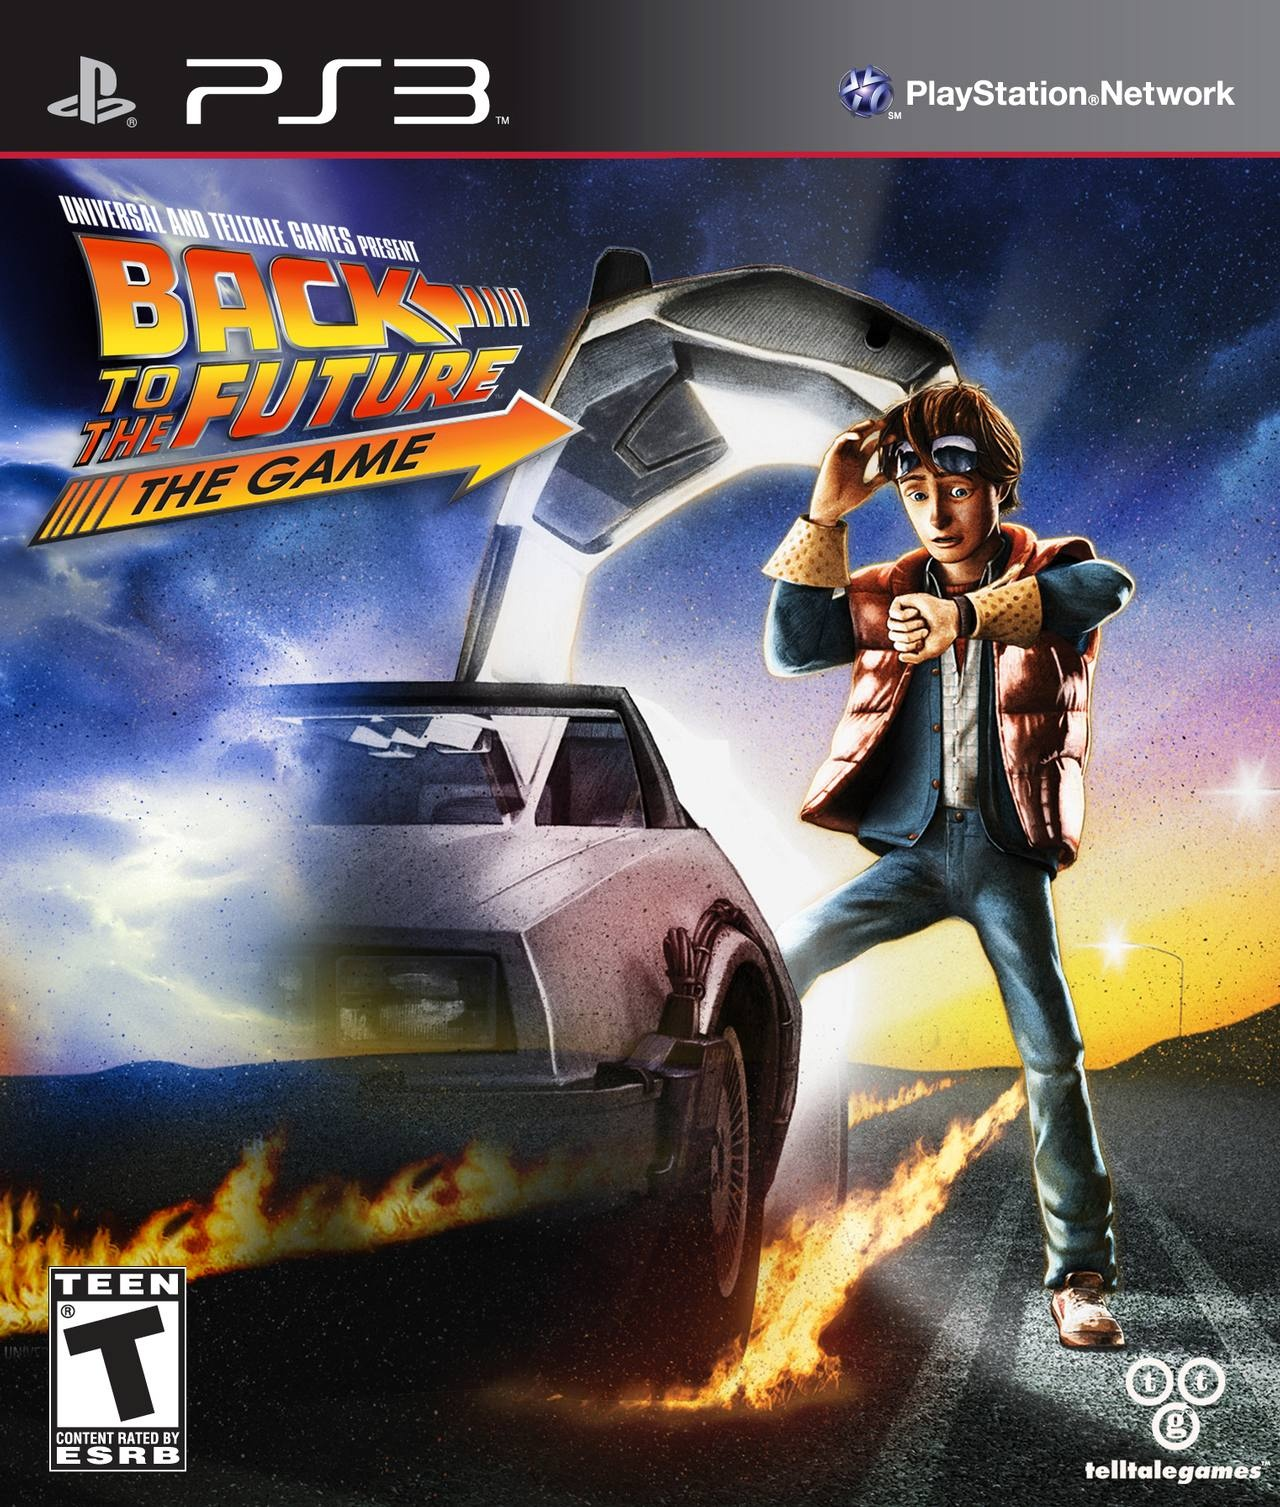 Back to the future blus30886 check out the release notes and the